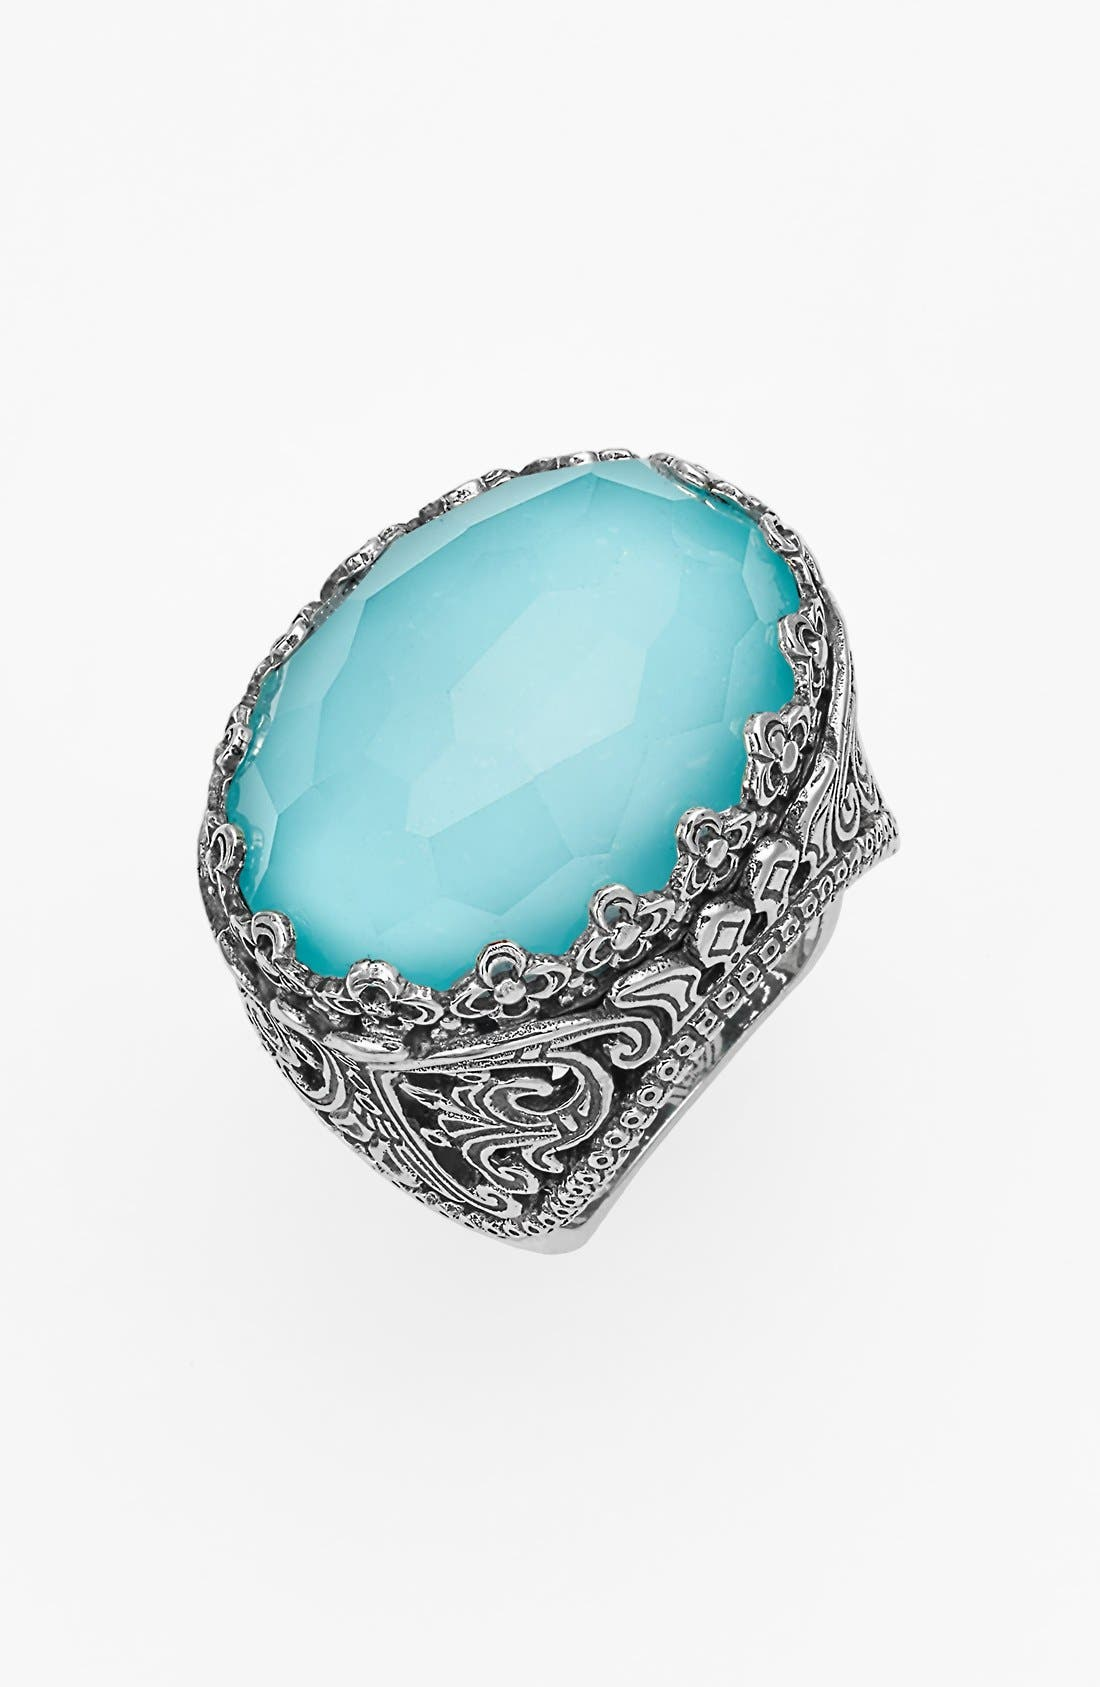 'Aegean' Oval Stone Ring,                         Main,                         color, Silver/ Turquoise